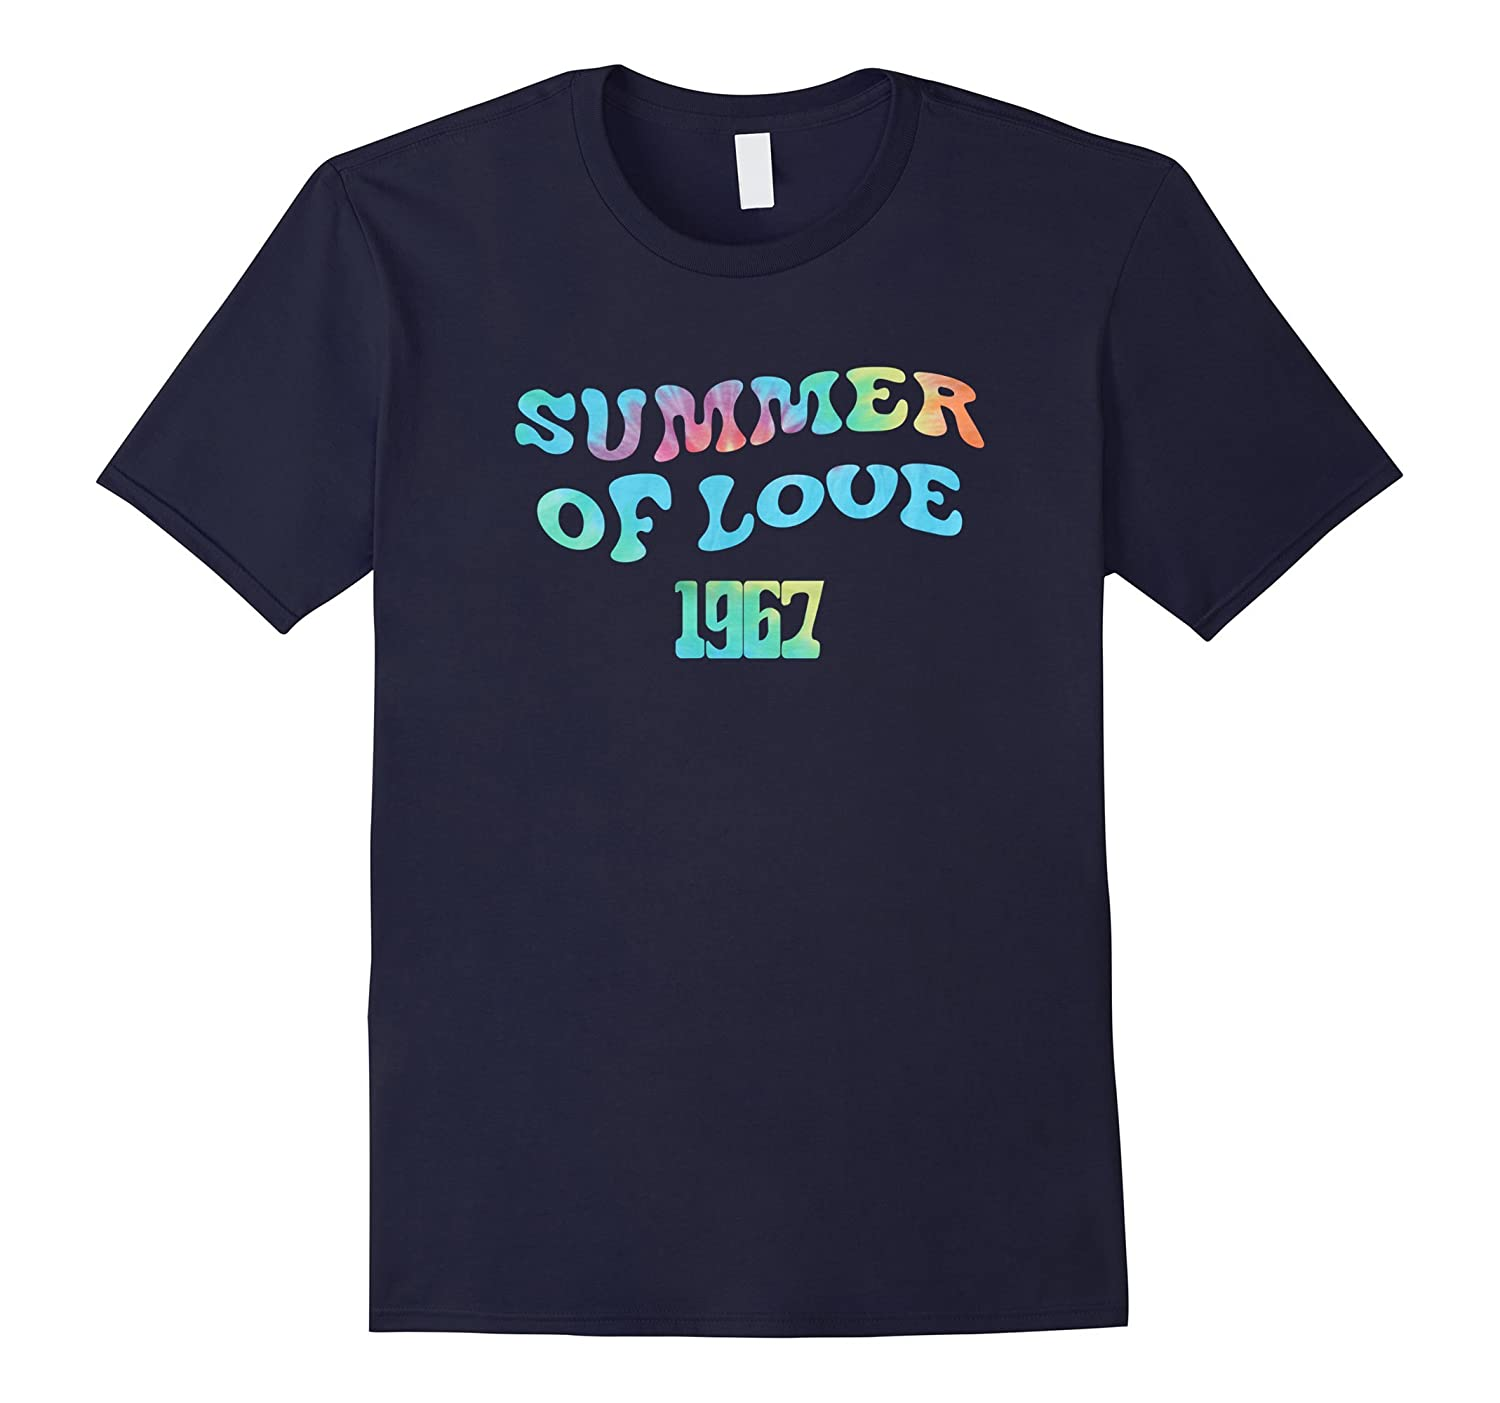 1967 Summer of Love Tie Dye T-shirt-PL